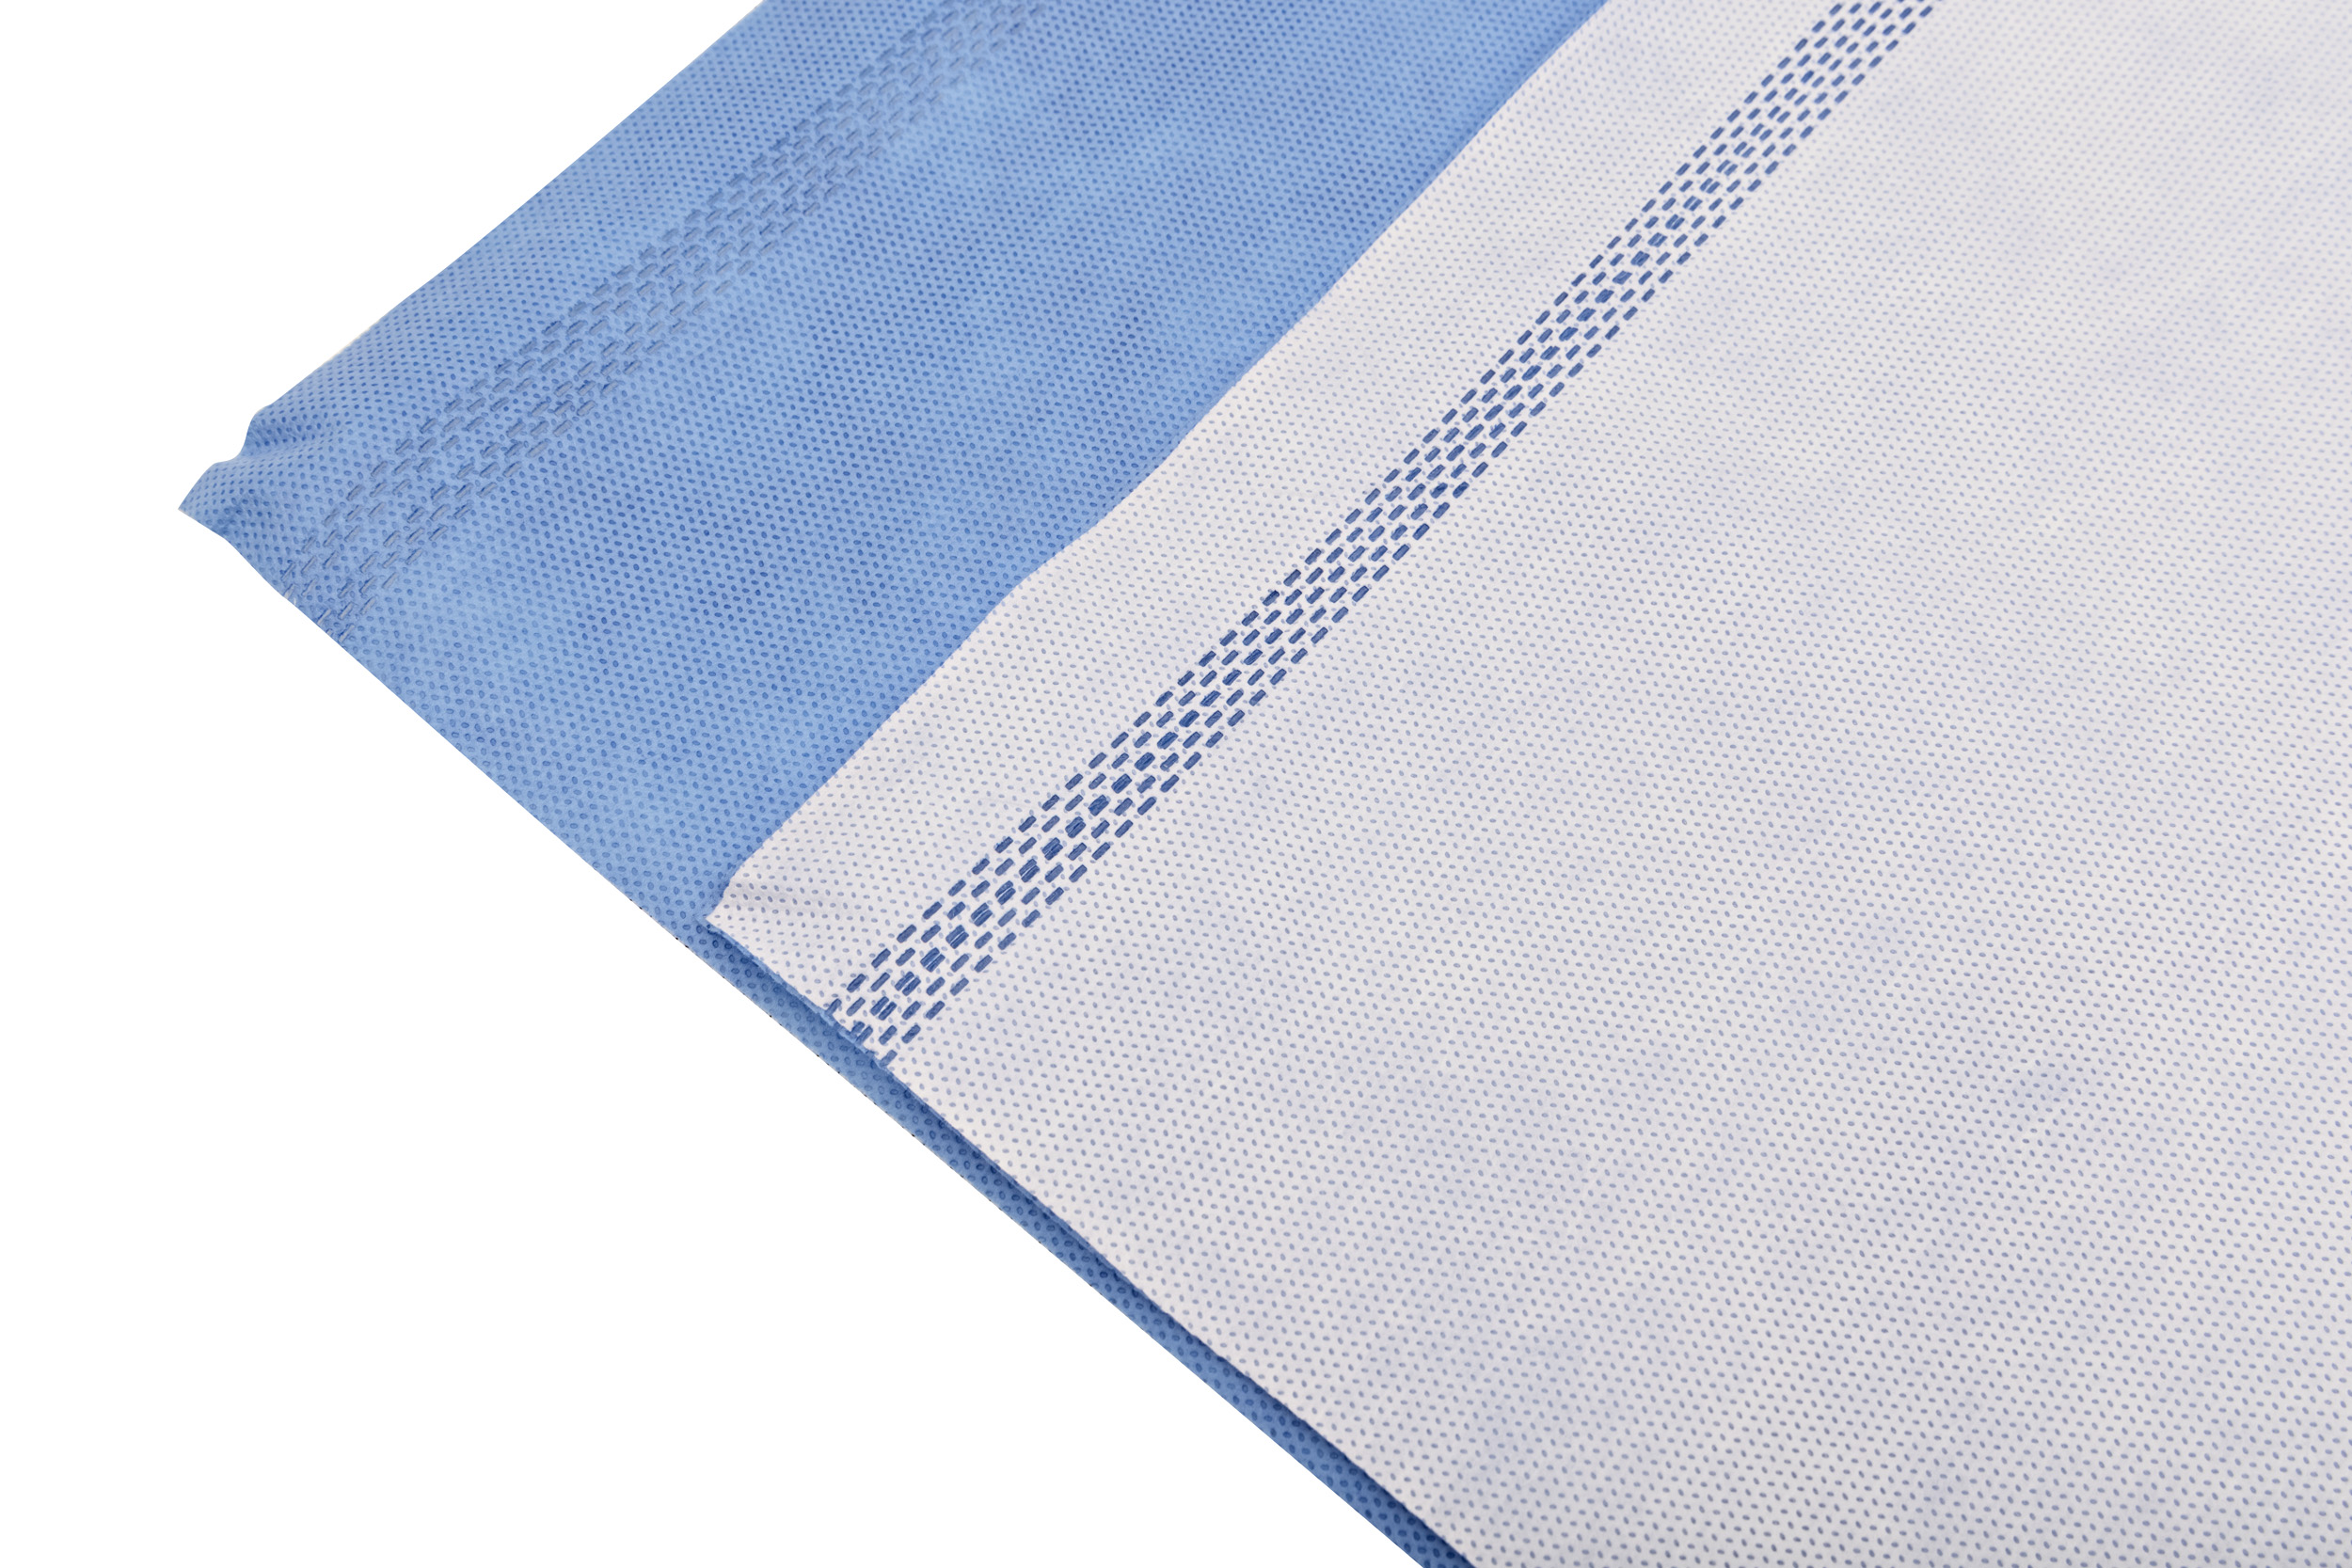 Double Layer HD Surgical Wrap 120 x 120cm